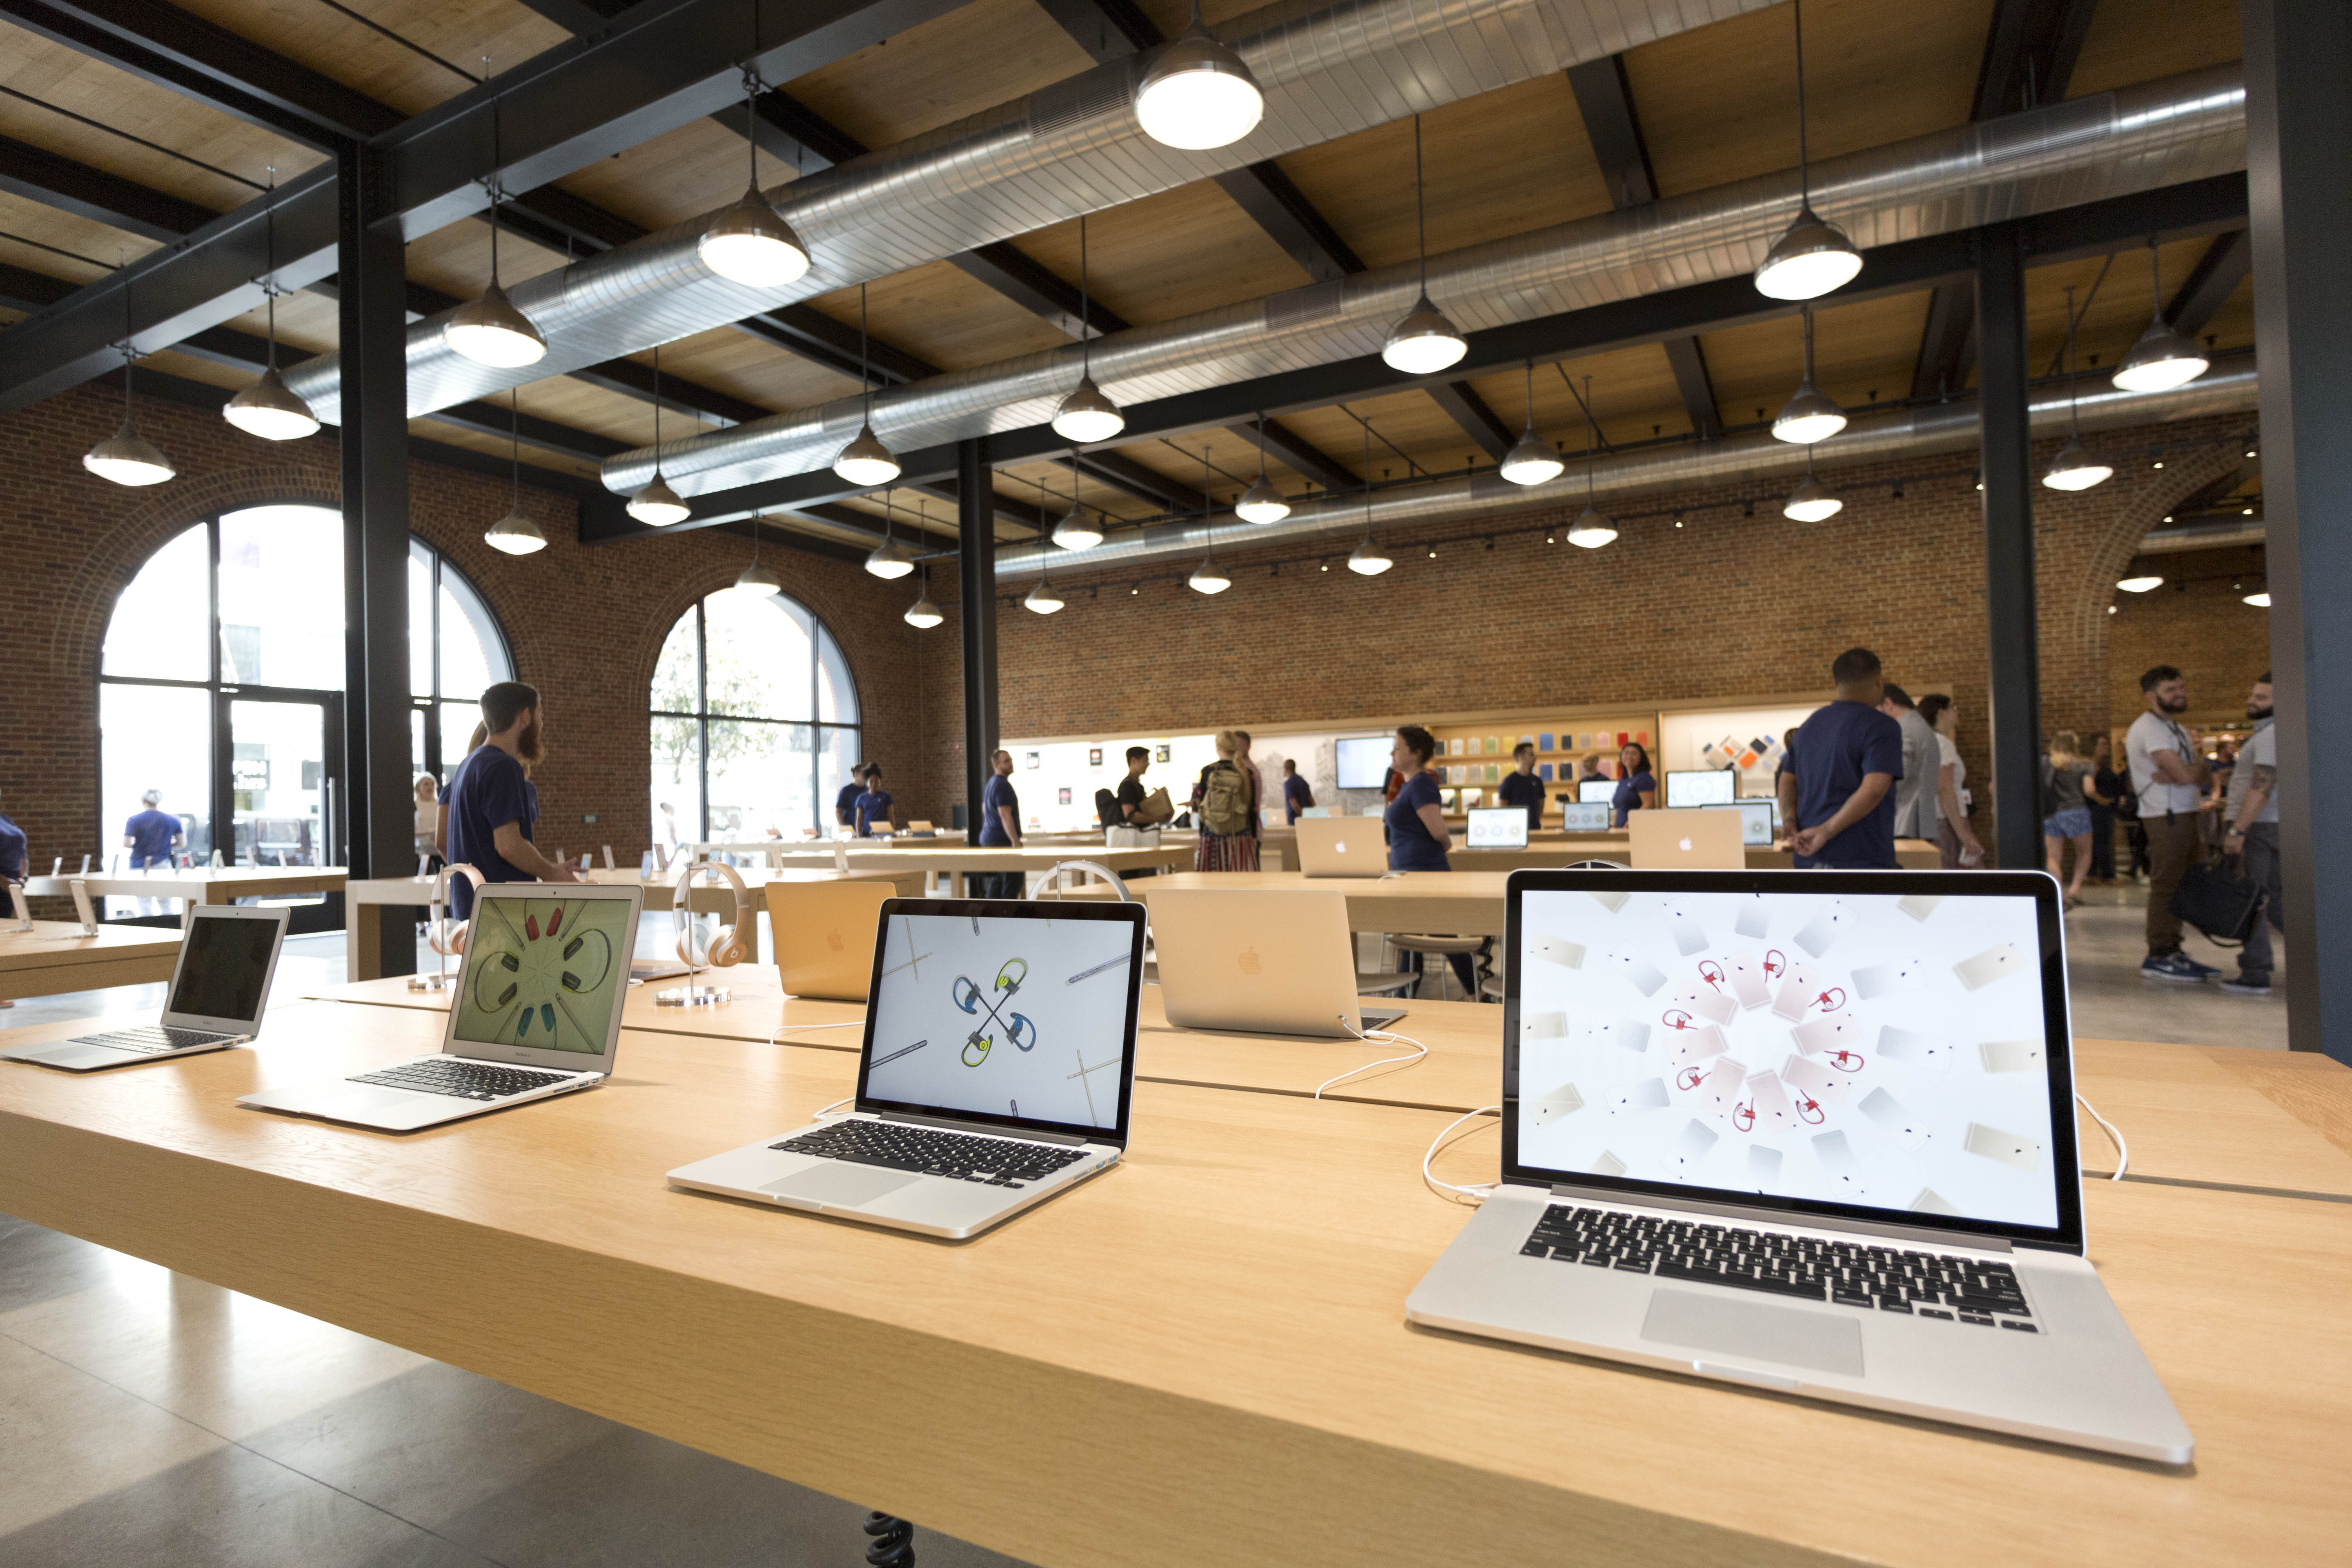 Mac laptops are displayed at a new Apple Store in the Williamsburg section in the Brooklyn borough of New York.